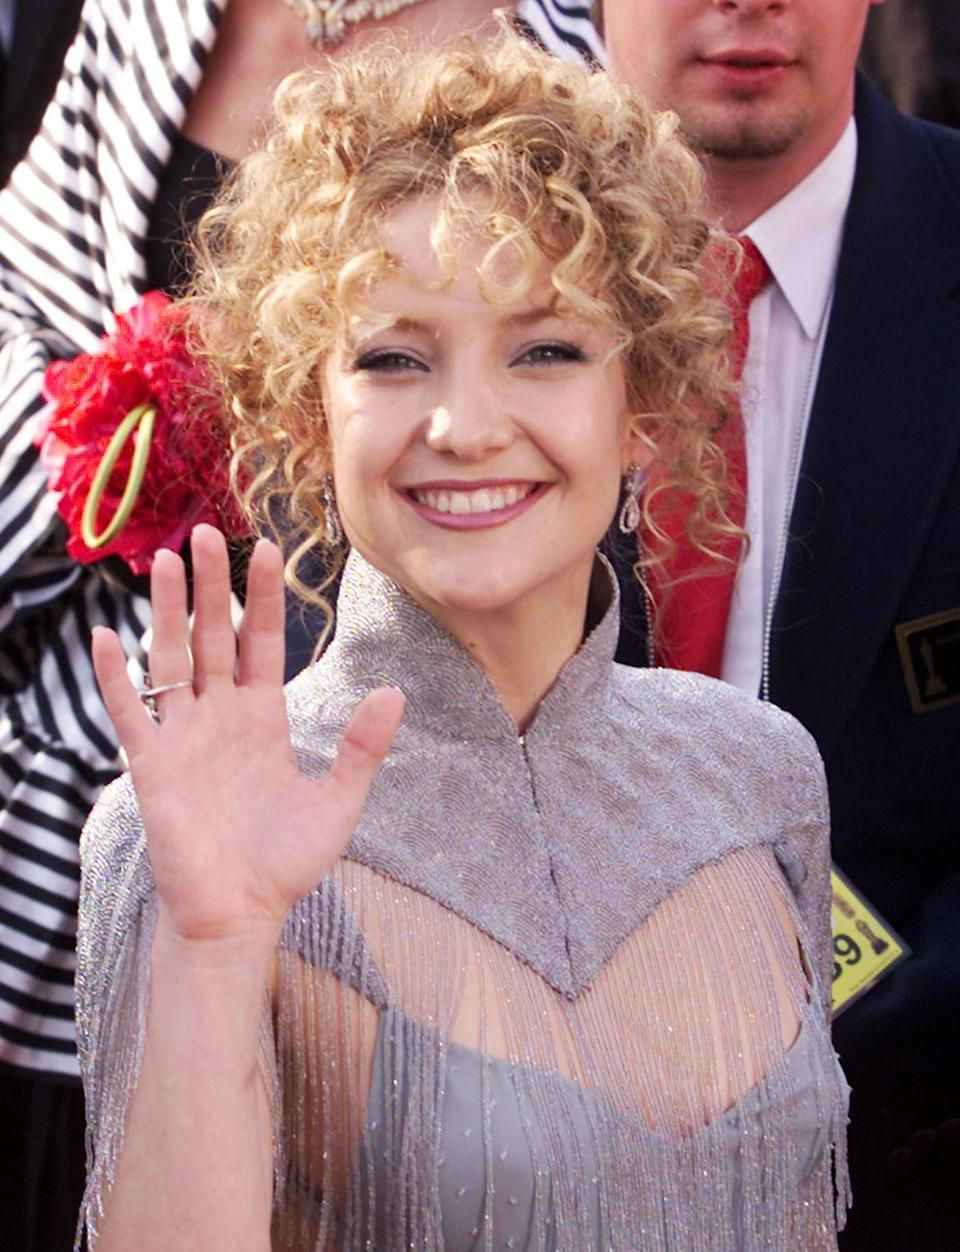 """<p>Nominated for her role in <em>Almost Famous</em>, Kate Hudson smiled big on the red carpet while rocking a curly updo and beaded lilac gown. (<a href=""""https://people.com/style/celebrity-biggest-style-regrets/?slide=6074256#6074256"""" rel=""""nofollow noopener"""" target=""""_blank"""" data-ylk=""""slk:She had regrets later, she has said"""" class=""""link rapid-noclick-resp"""">She had regrets later, she has said</a>.)</p>"""